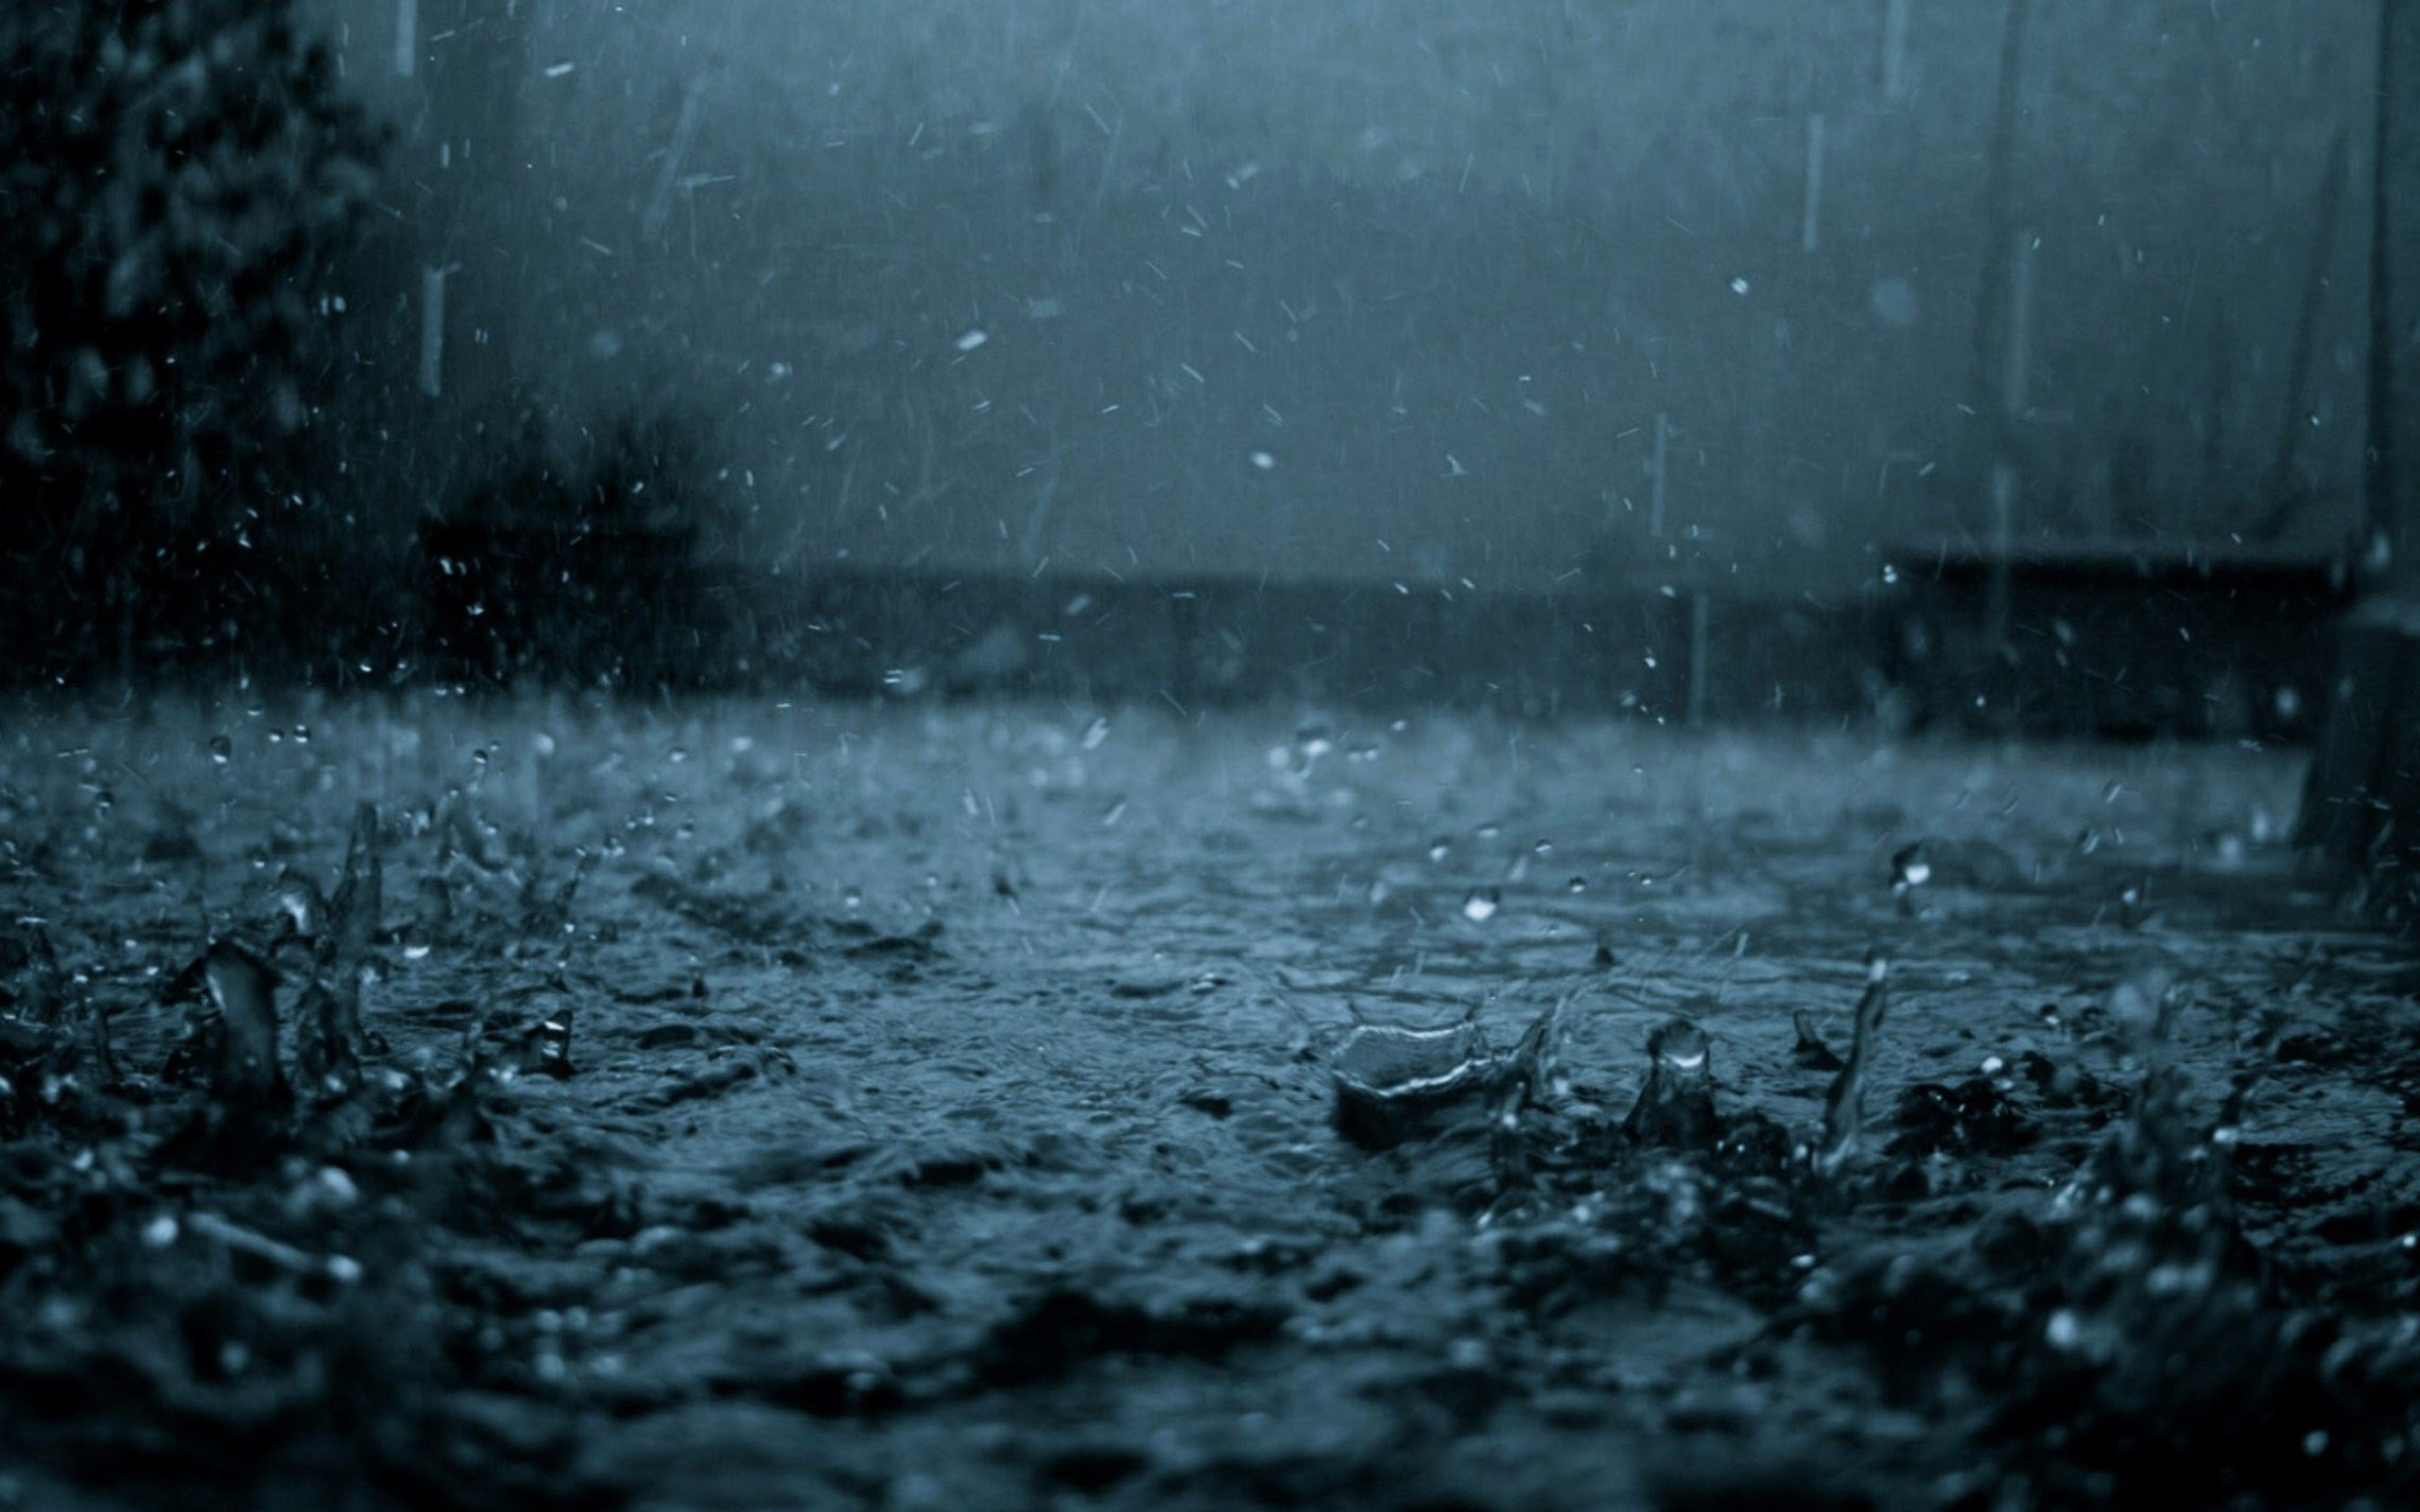 Wallpaper Hd Rain